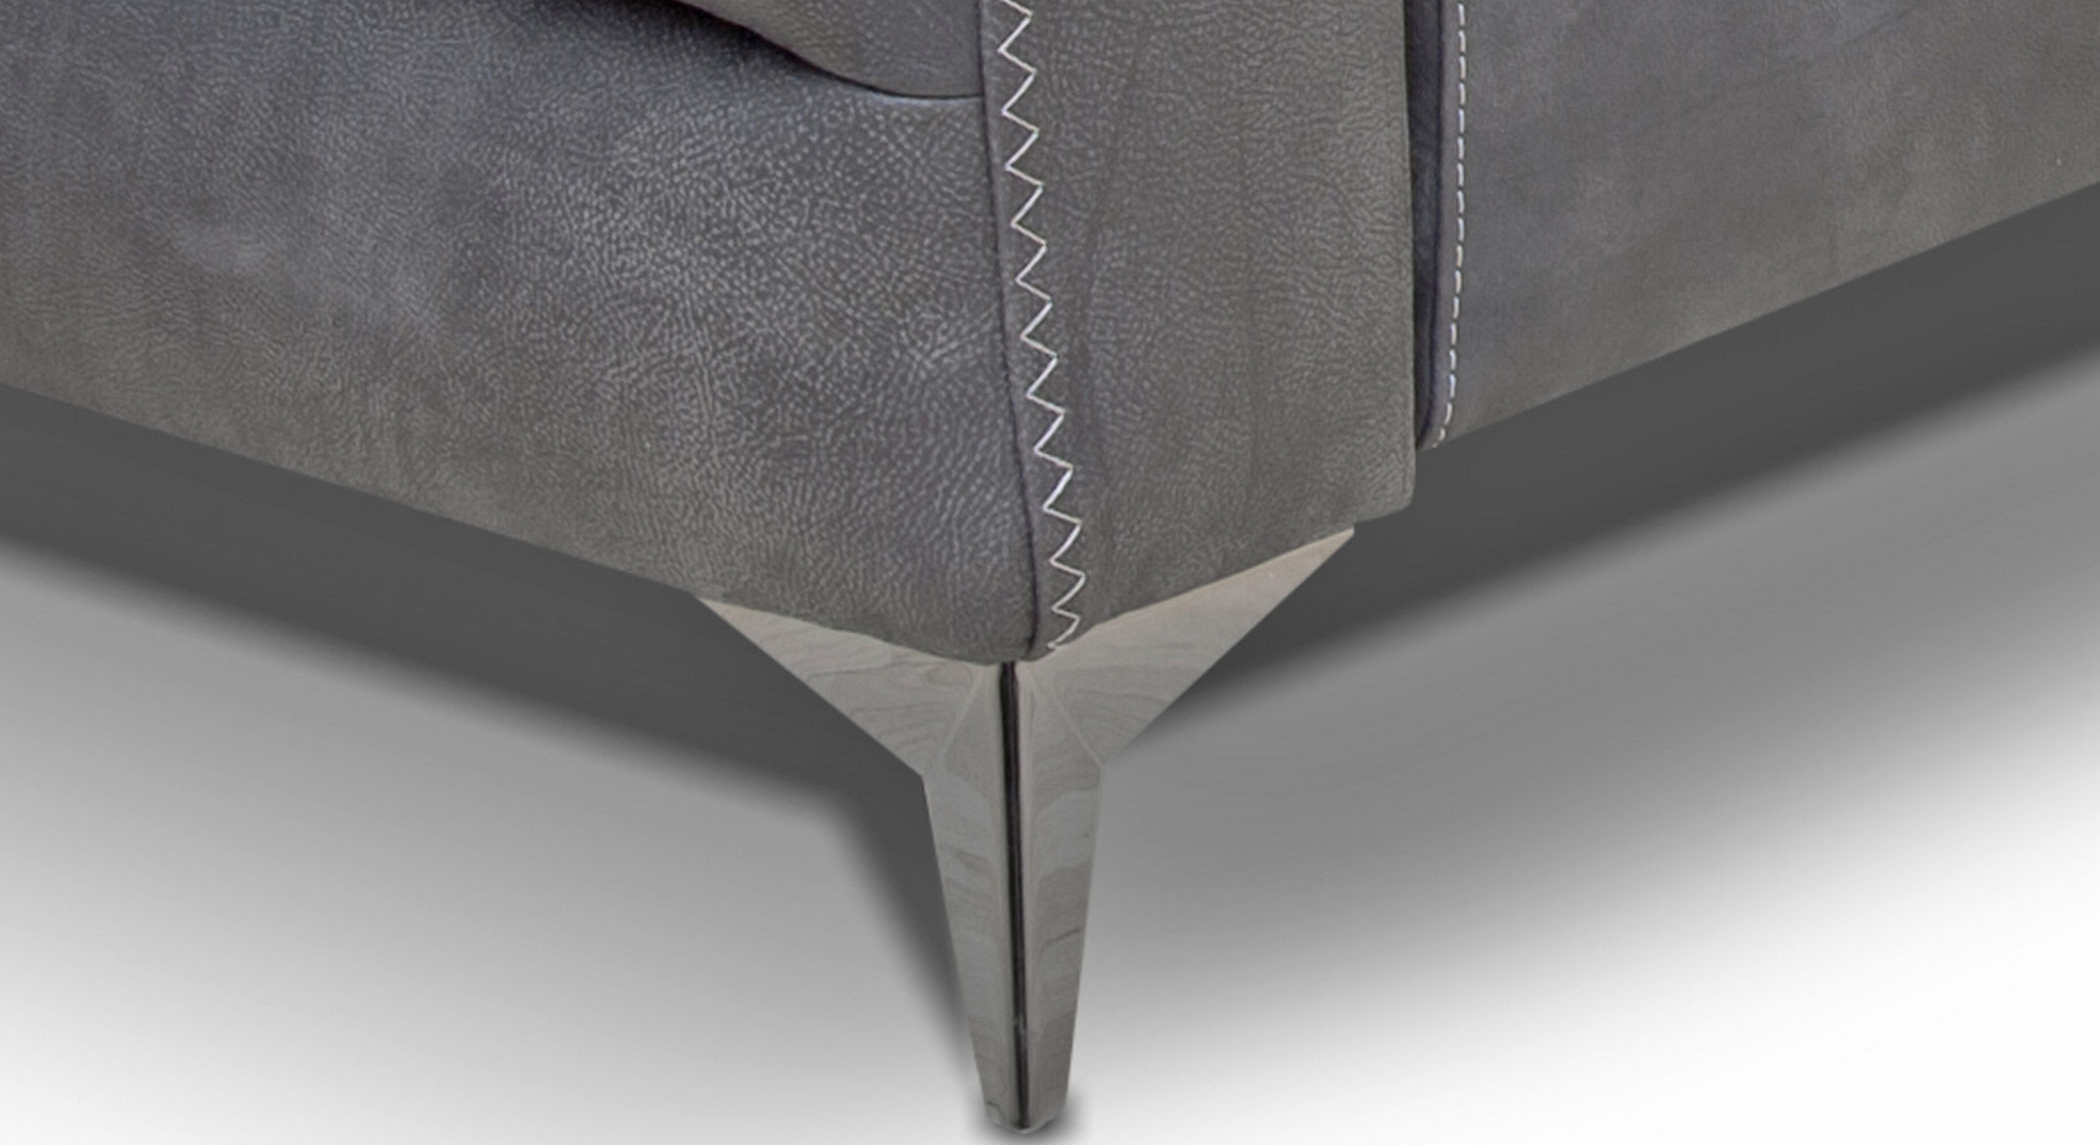 Bracci Ermes power sofa detail